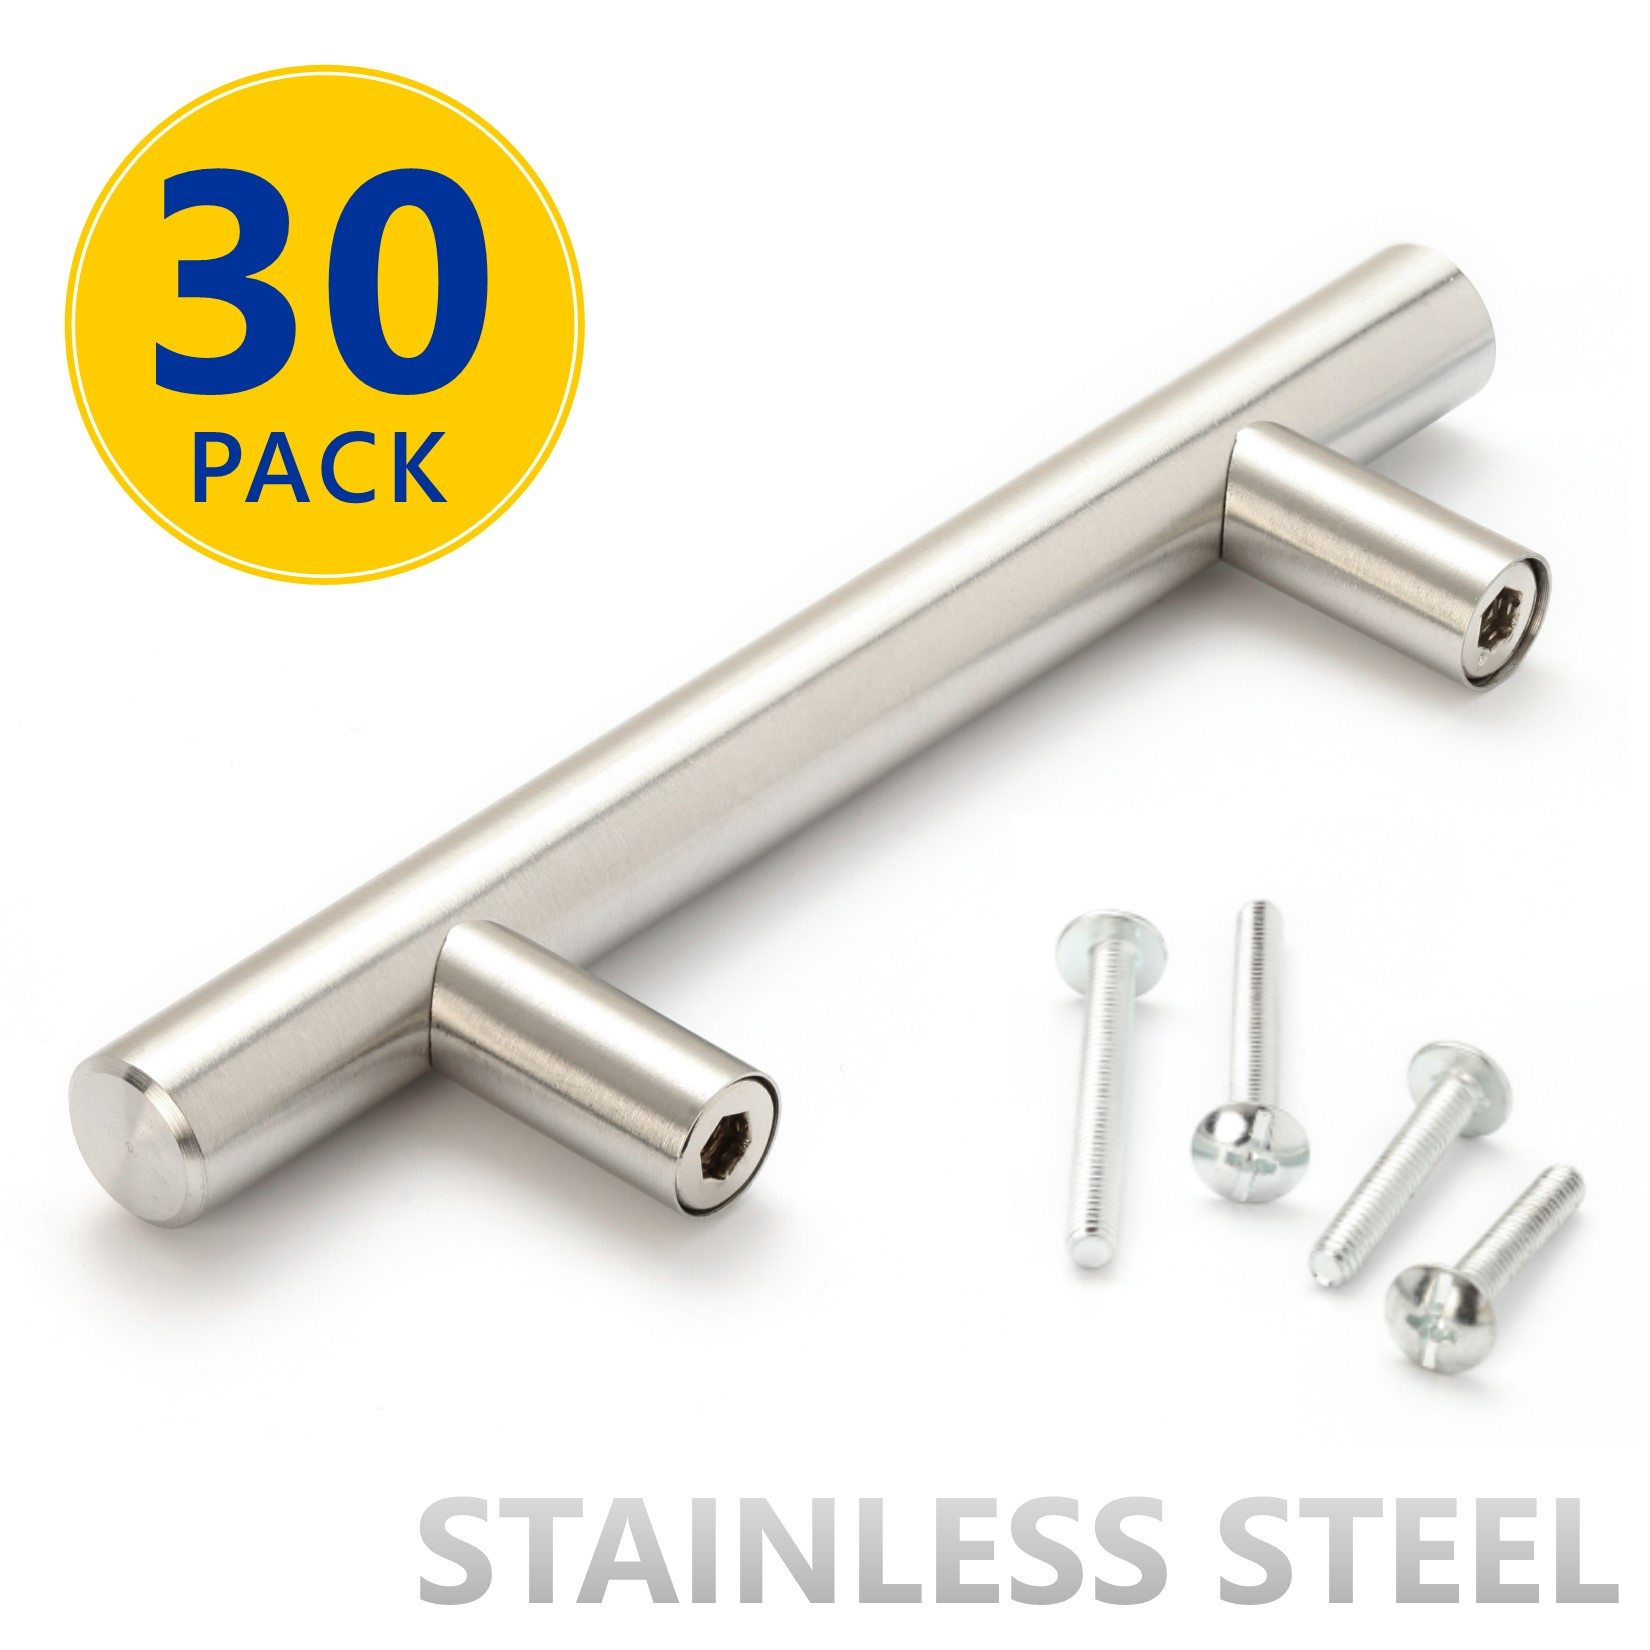 30 Pack 5 Stainless Steel T Bar Cabinet Pulls 3 Inch Hole Center 76mm Modern Euro Style Brushed Satin Nickel Finish Kitchen Cabinet Hardware Drawer Handles Walmart Com Walmart Com